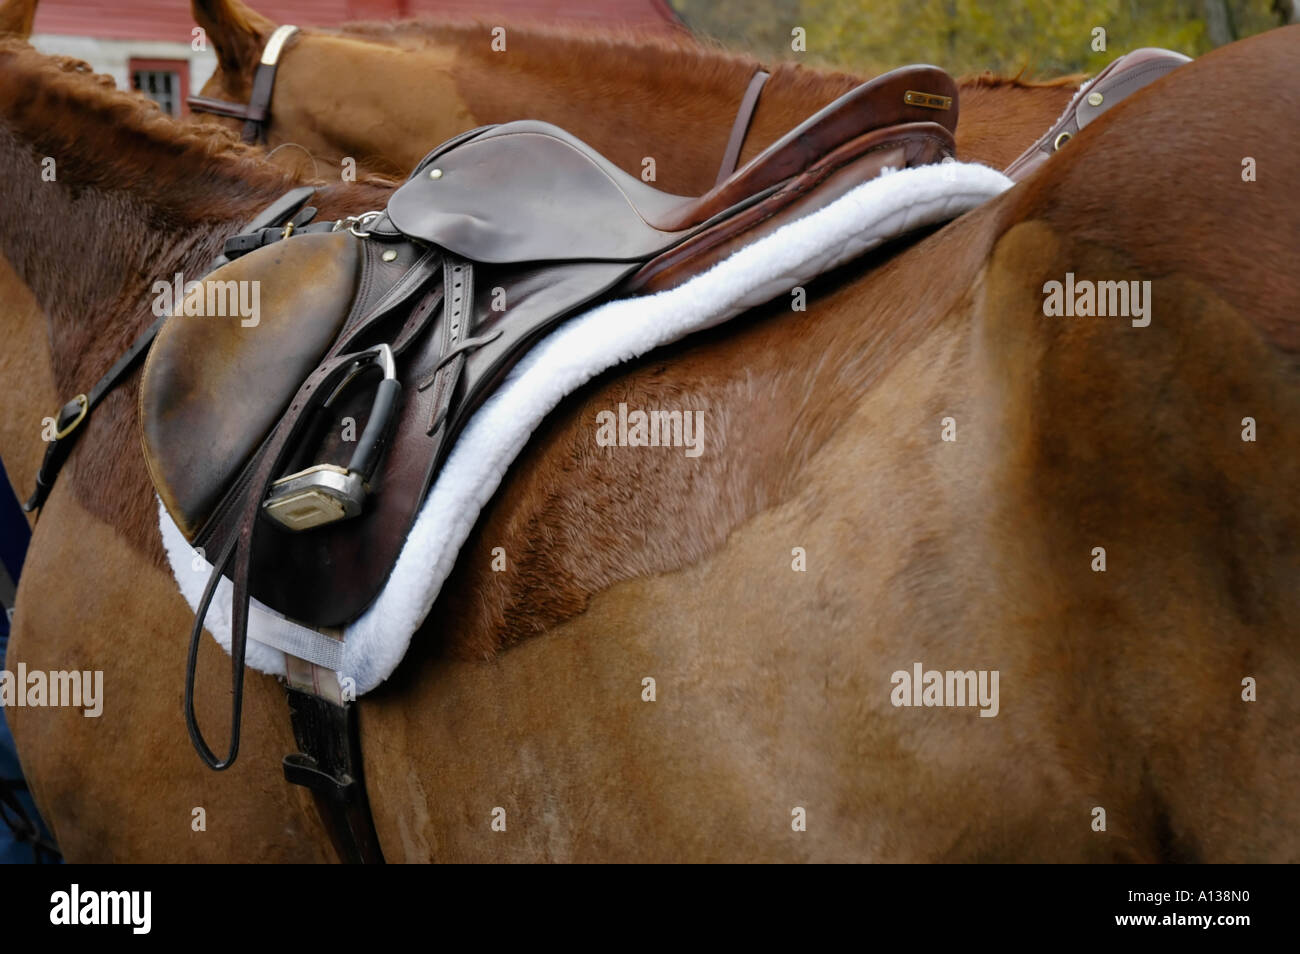 English saddle on a horse - Stock Image